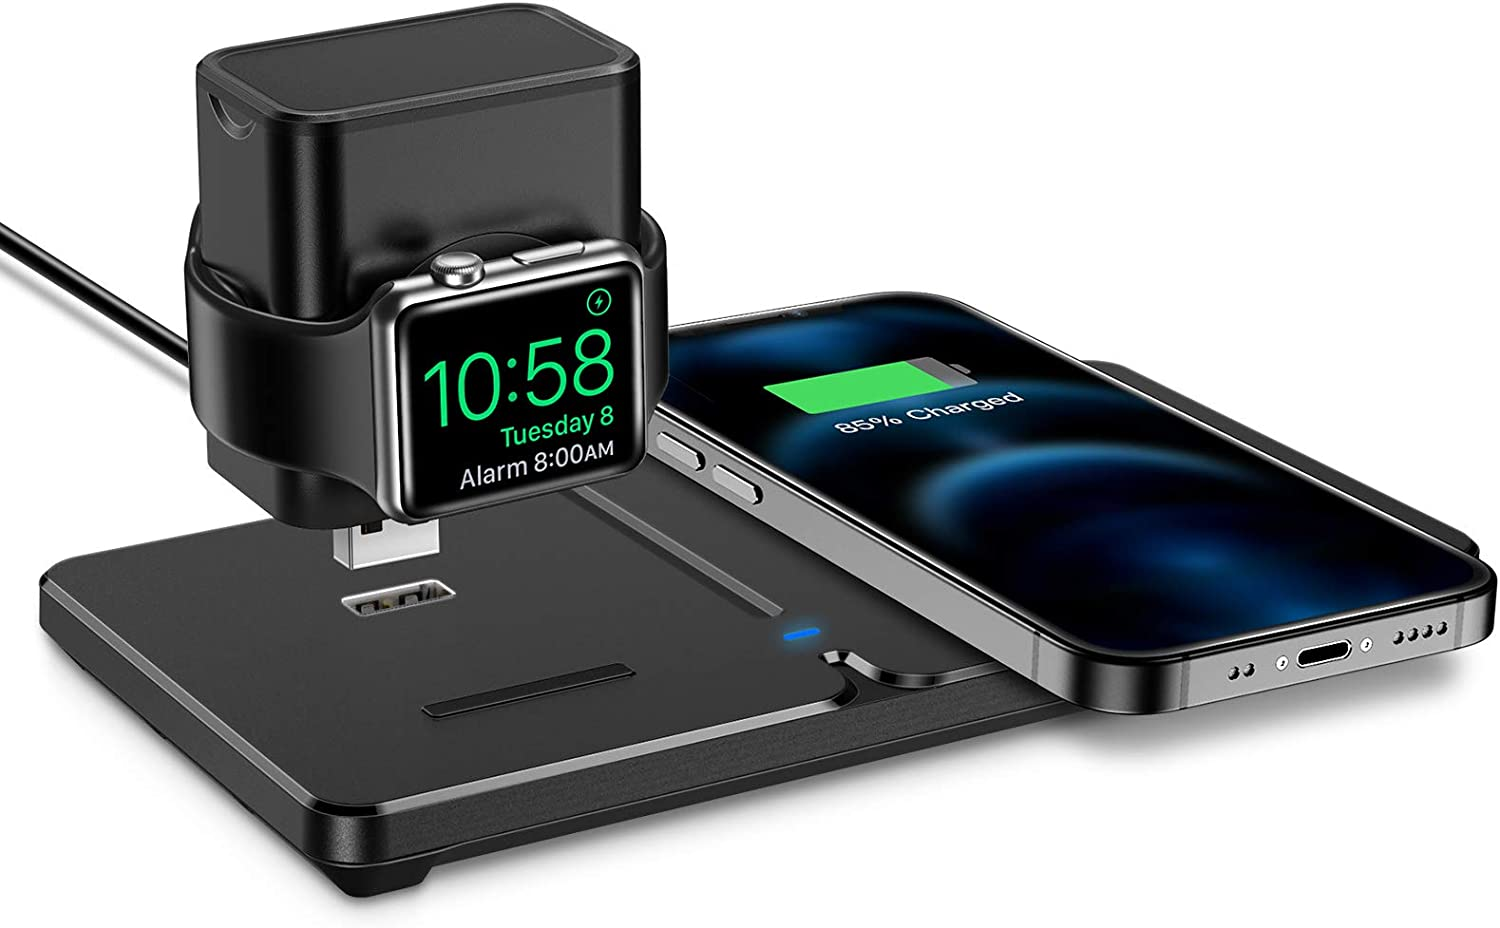 ESR 2-in-1 Wireless Charger [Detachable Smartwatch Charging Stand] [15W Fast Wireless Charging] Compatible with iPhone 12/11/XS/XR/8/8 Plus, AirPods Pro/2, iWatch 5/4/3/2 (No Adapter)